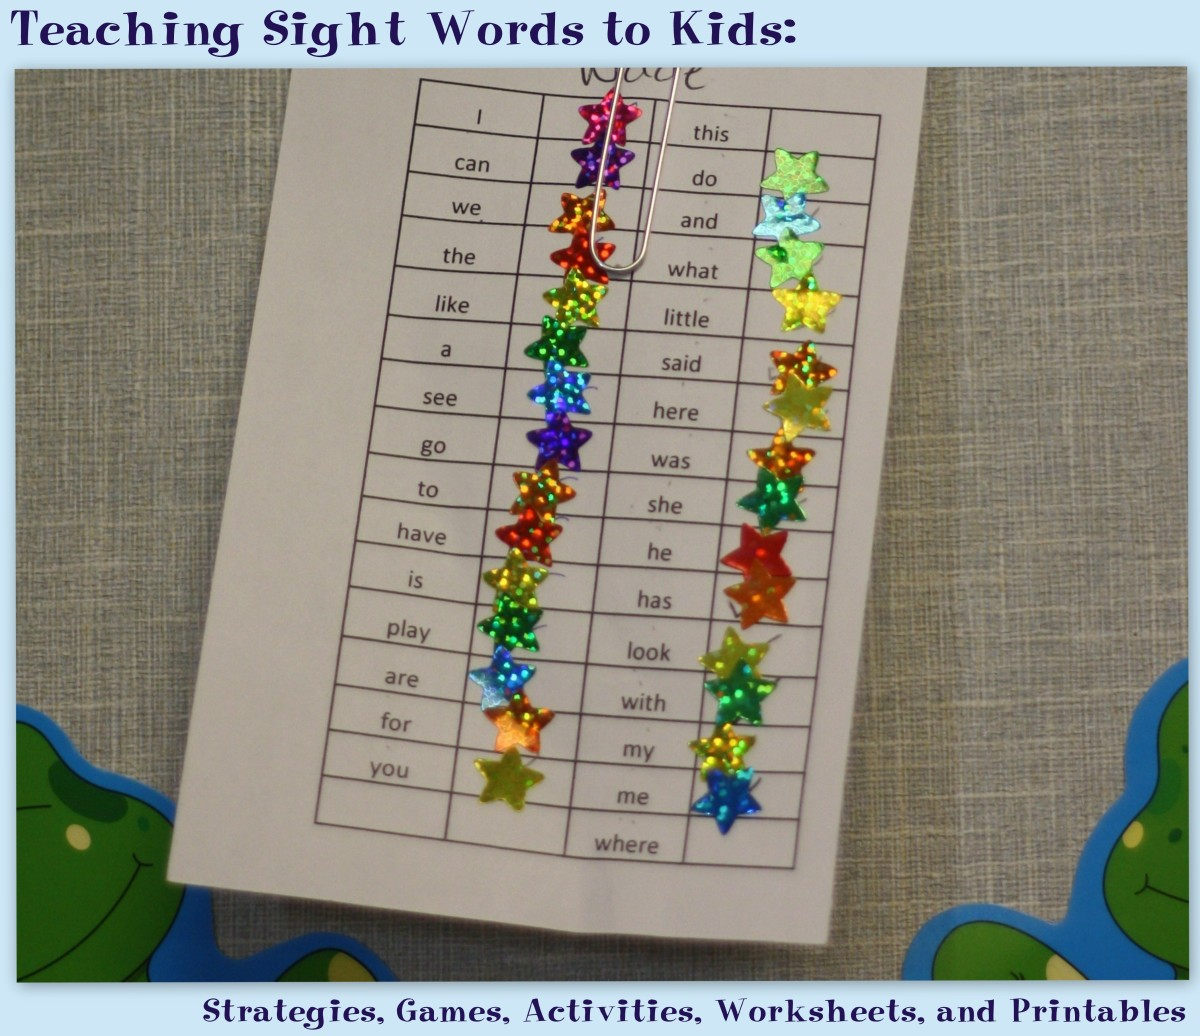 teaching-sight-words-to-kids-strategies-games-activities-worksheets-printables